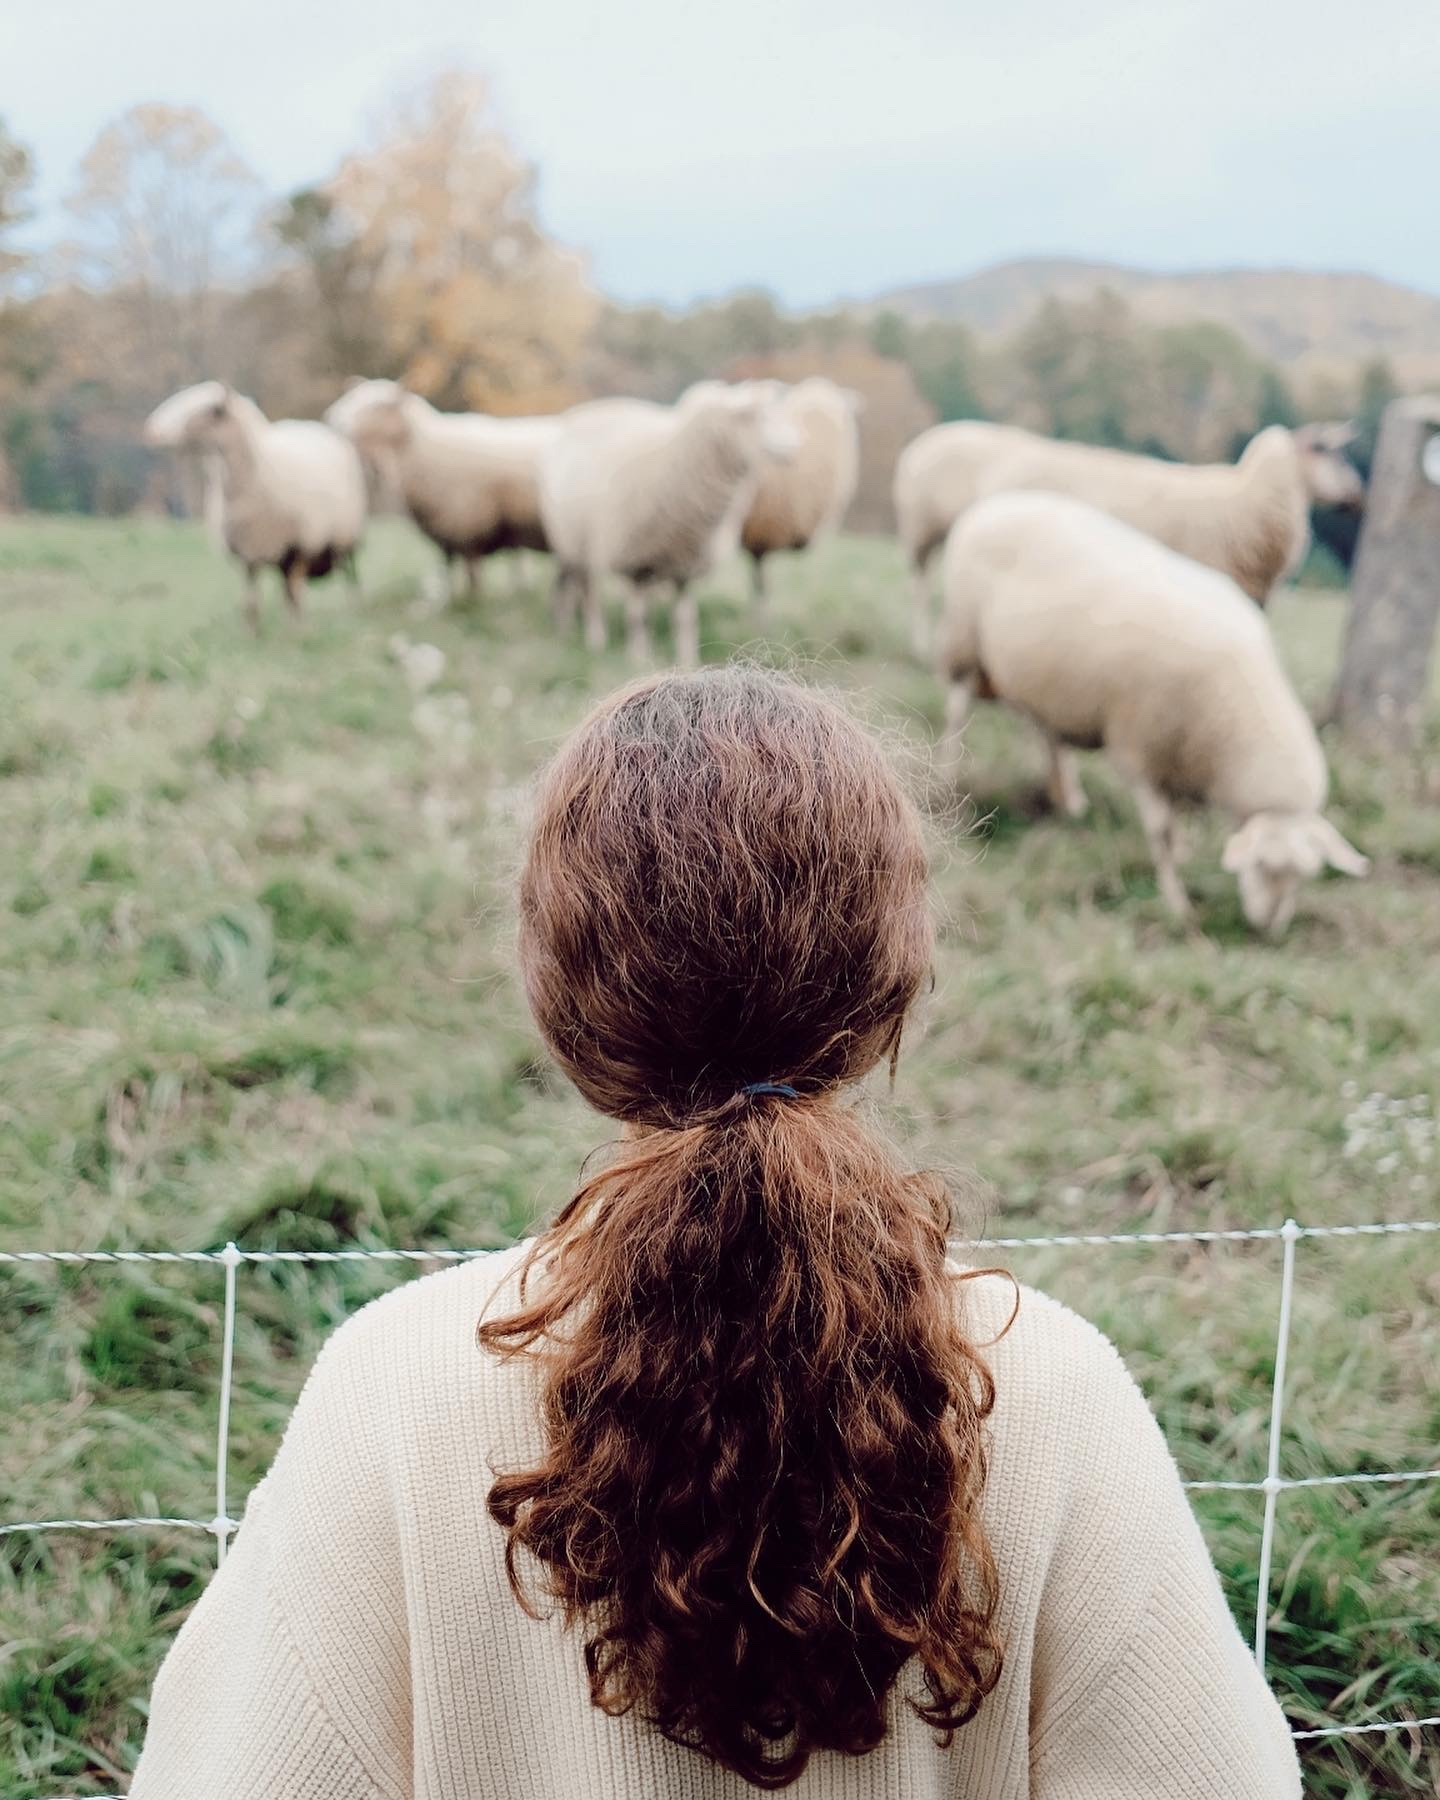 a girl with long brown curly hair facing a sheep pasture with white fluffy sheep